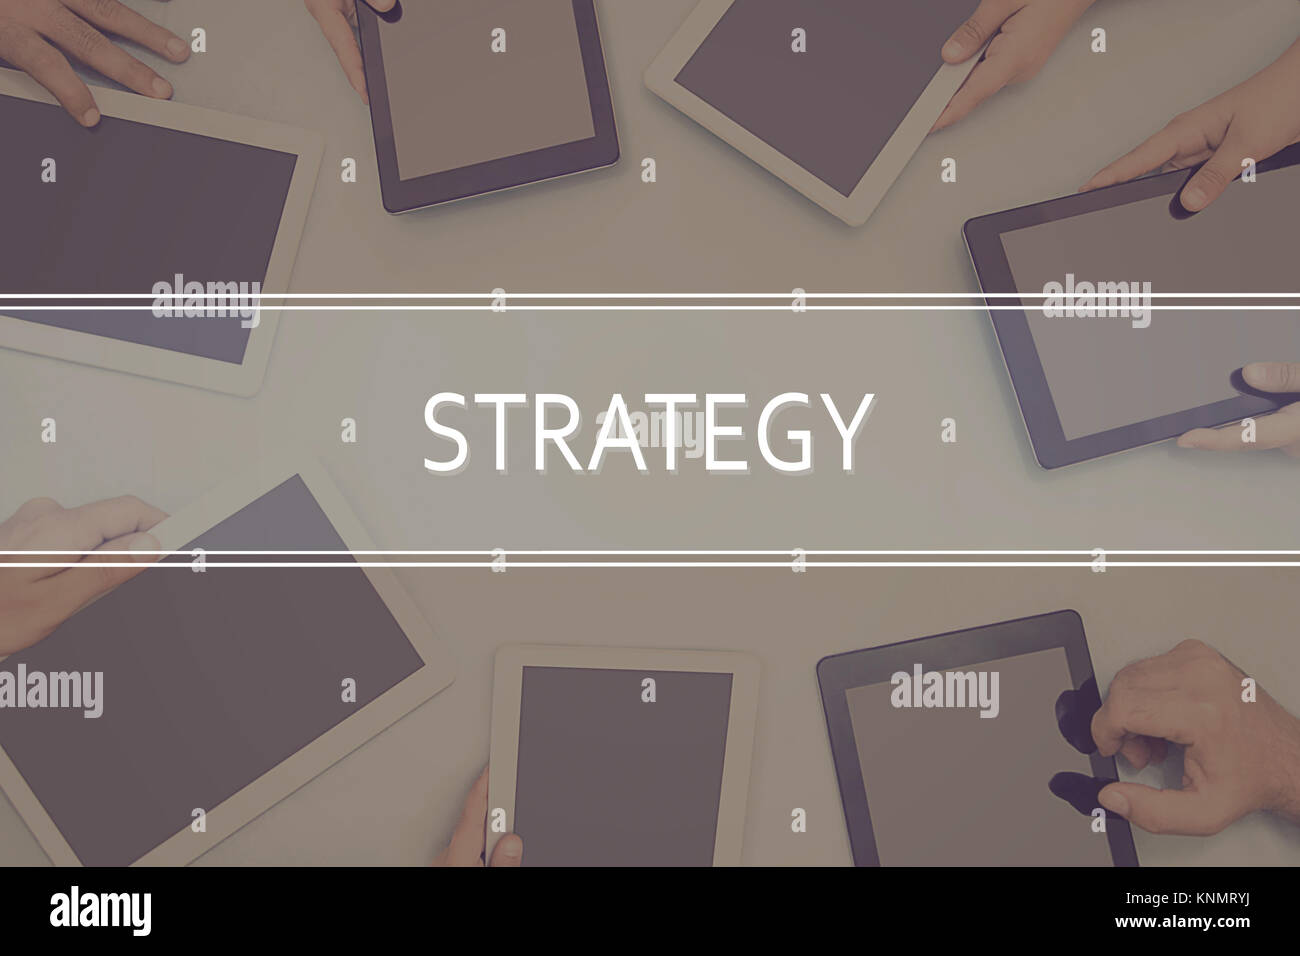 STRATEGY CONCEPT Business Concept. - Stock Image